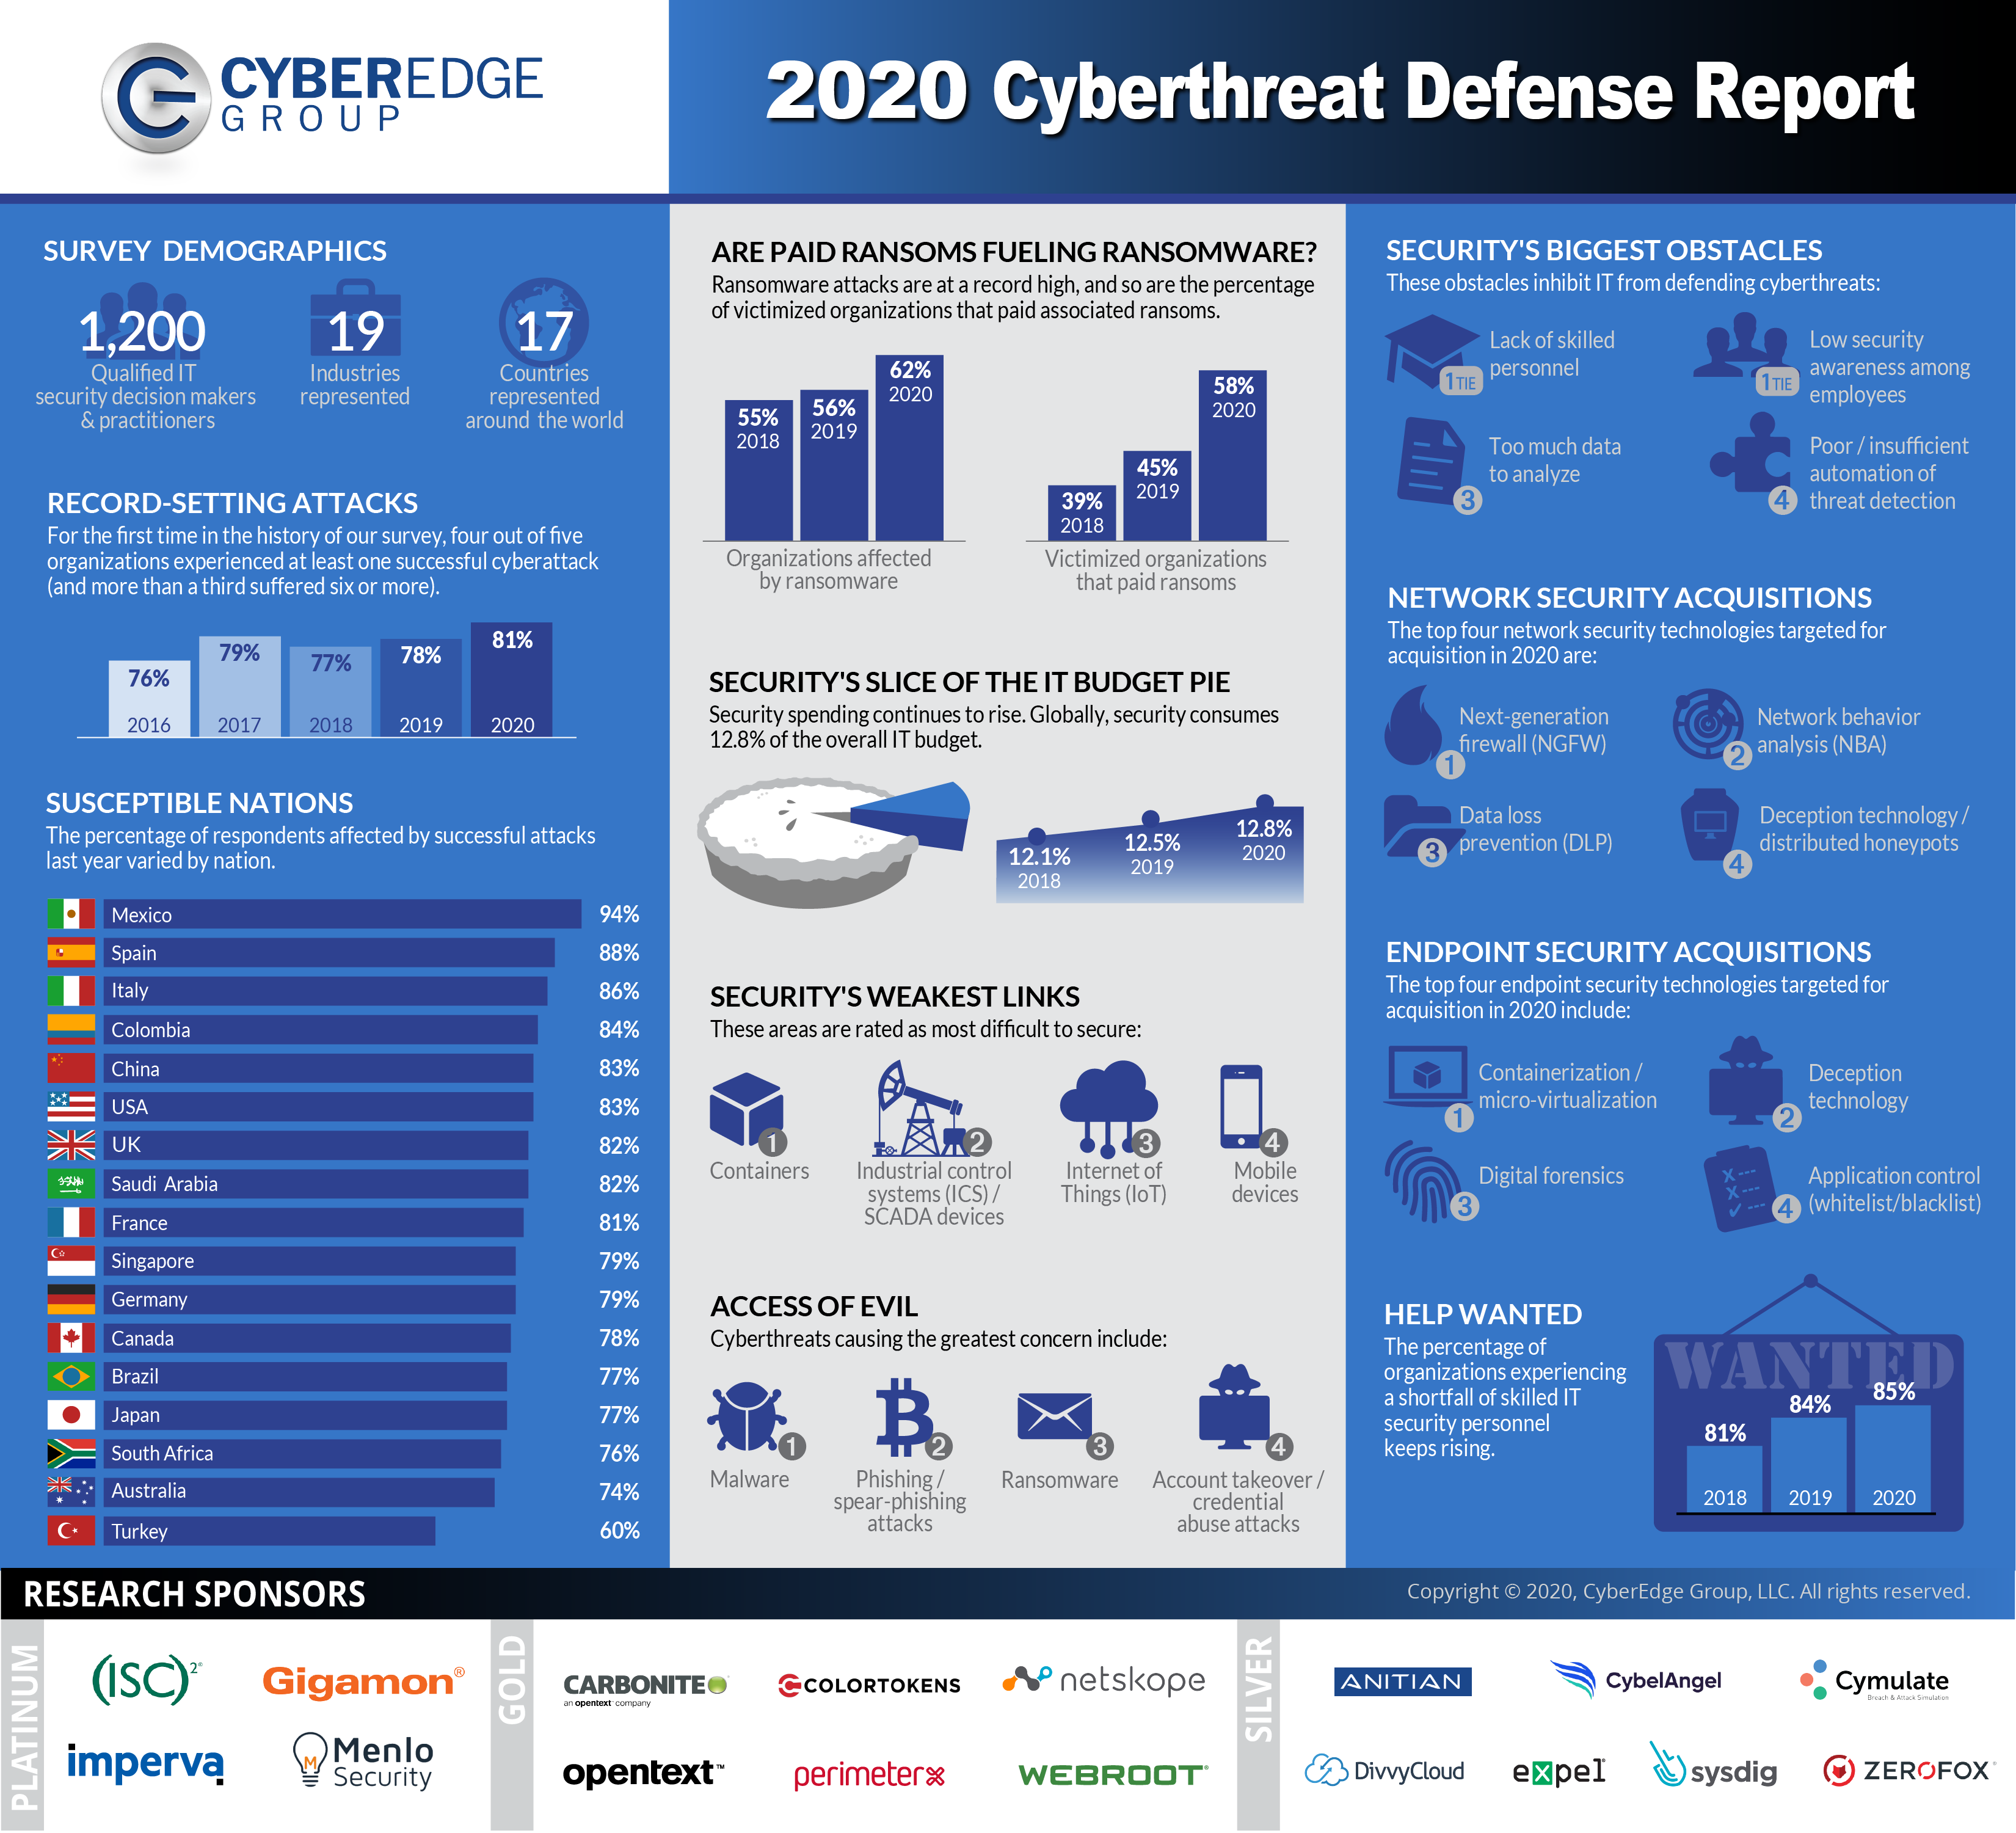 Presentation image for CyberEdge 2020 Cyberthreat Defense Report Infographic